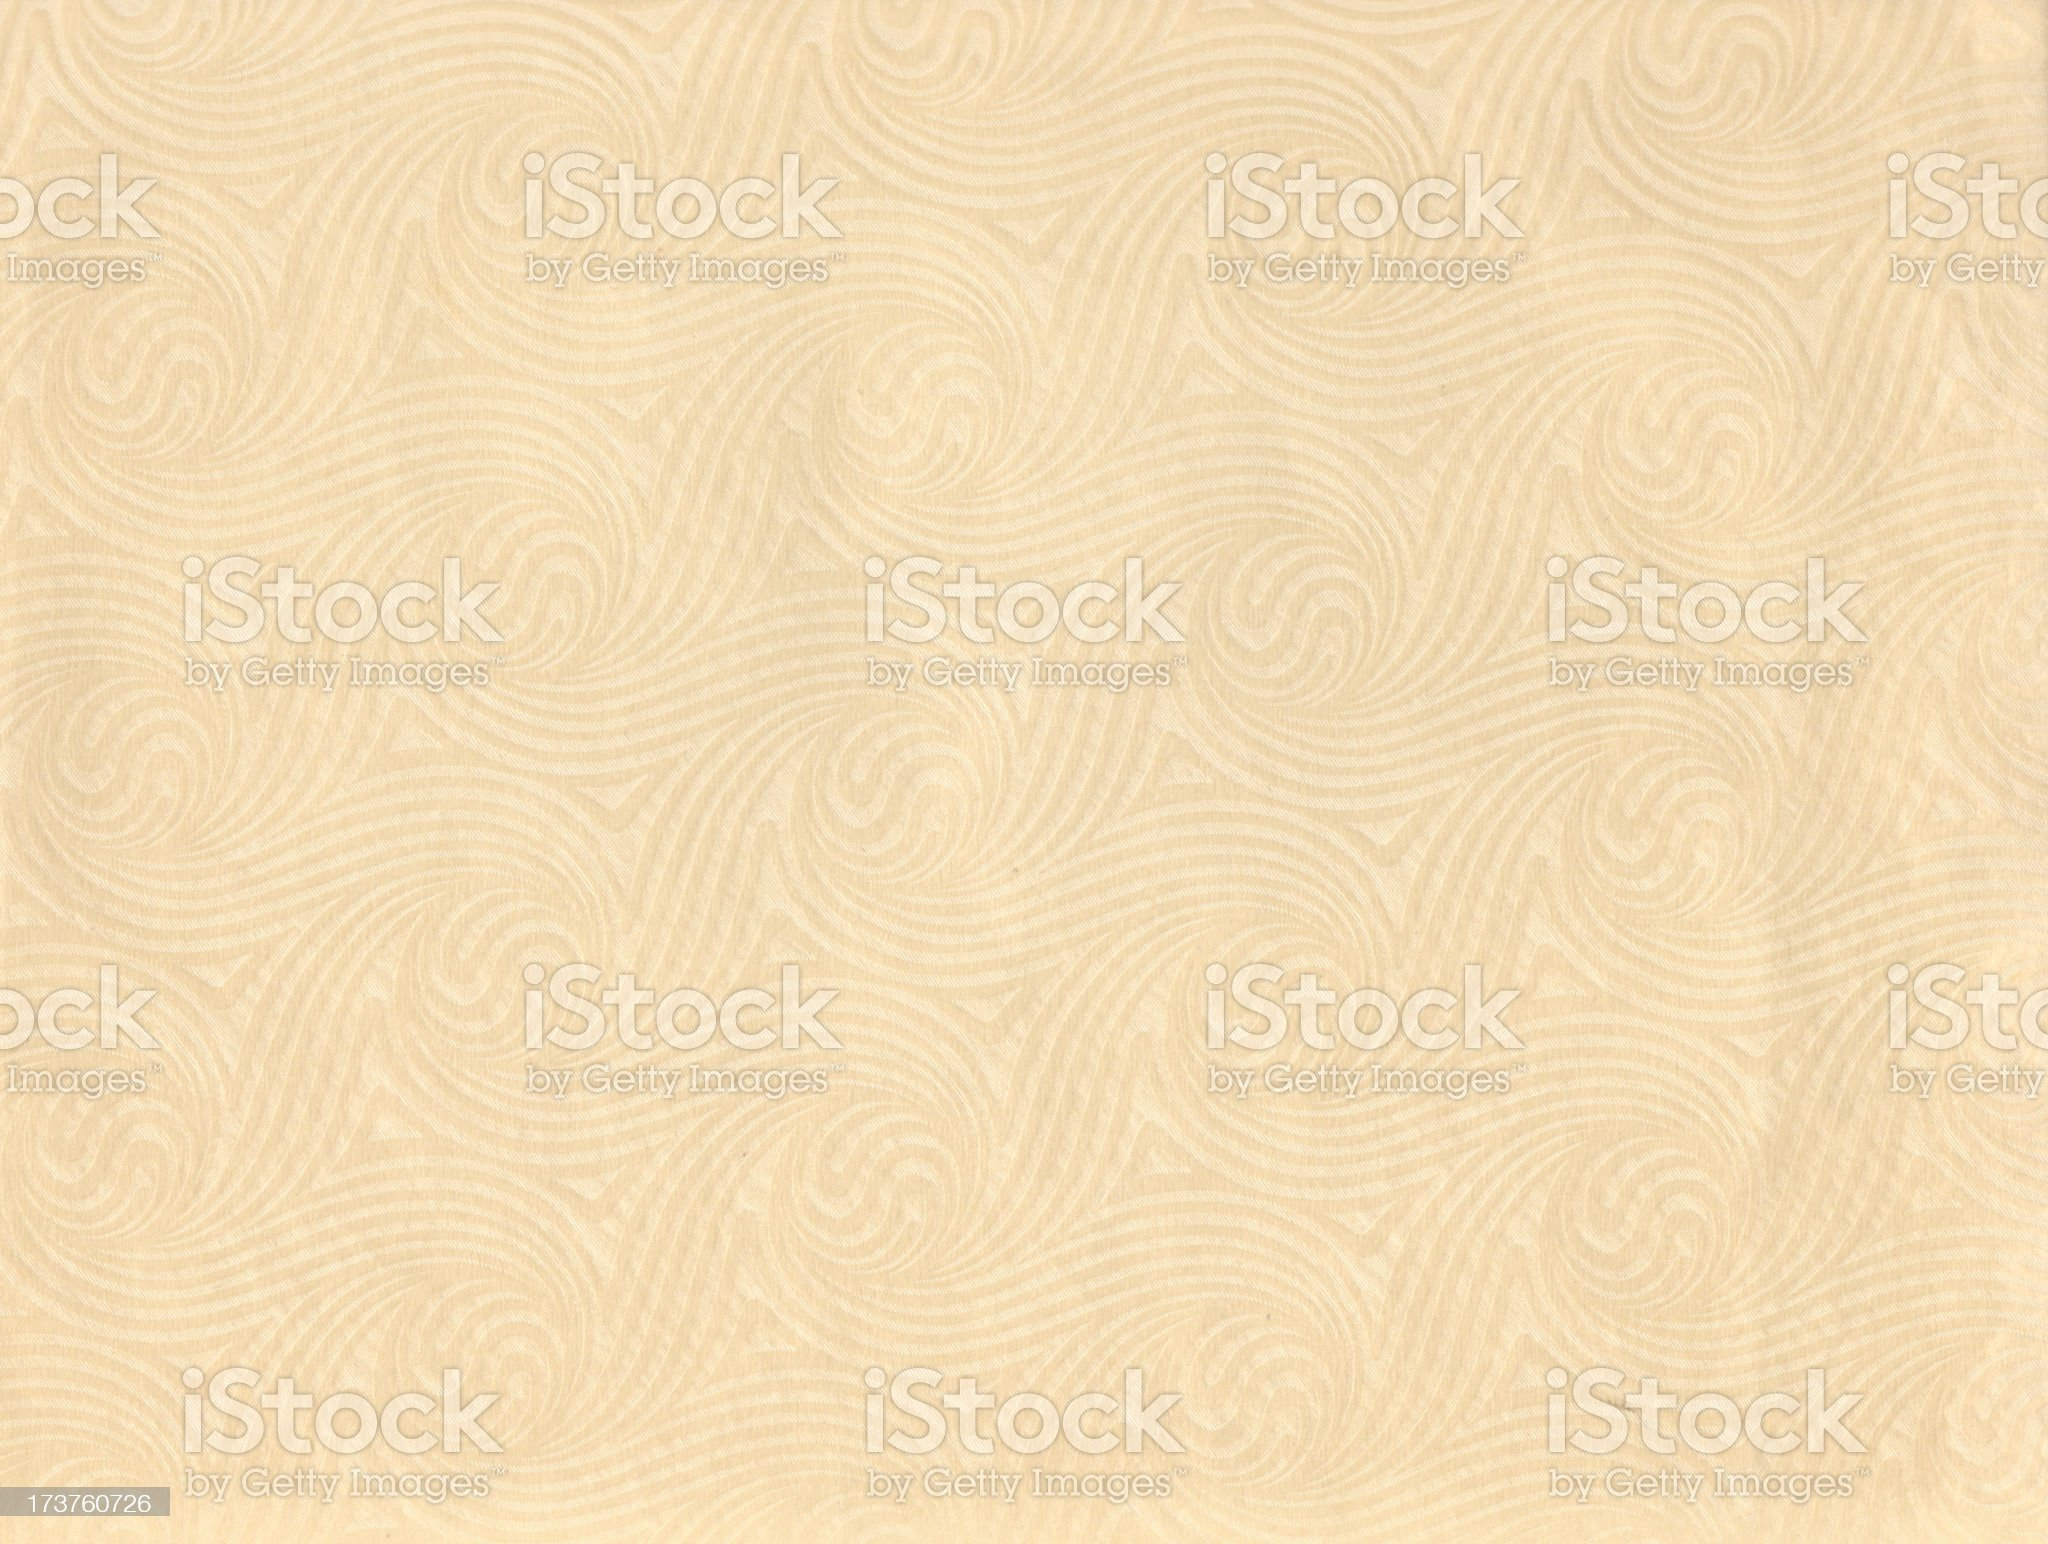 60's protection photo paper royalty-free stock photo